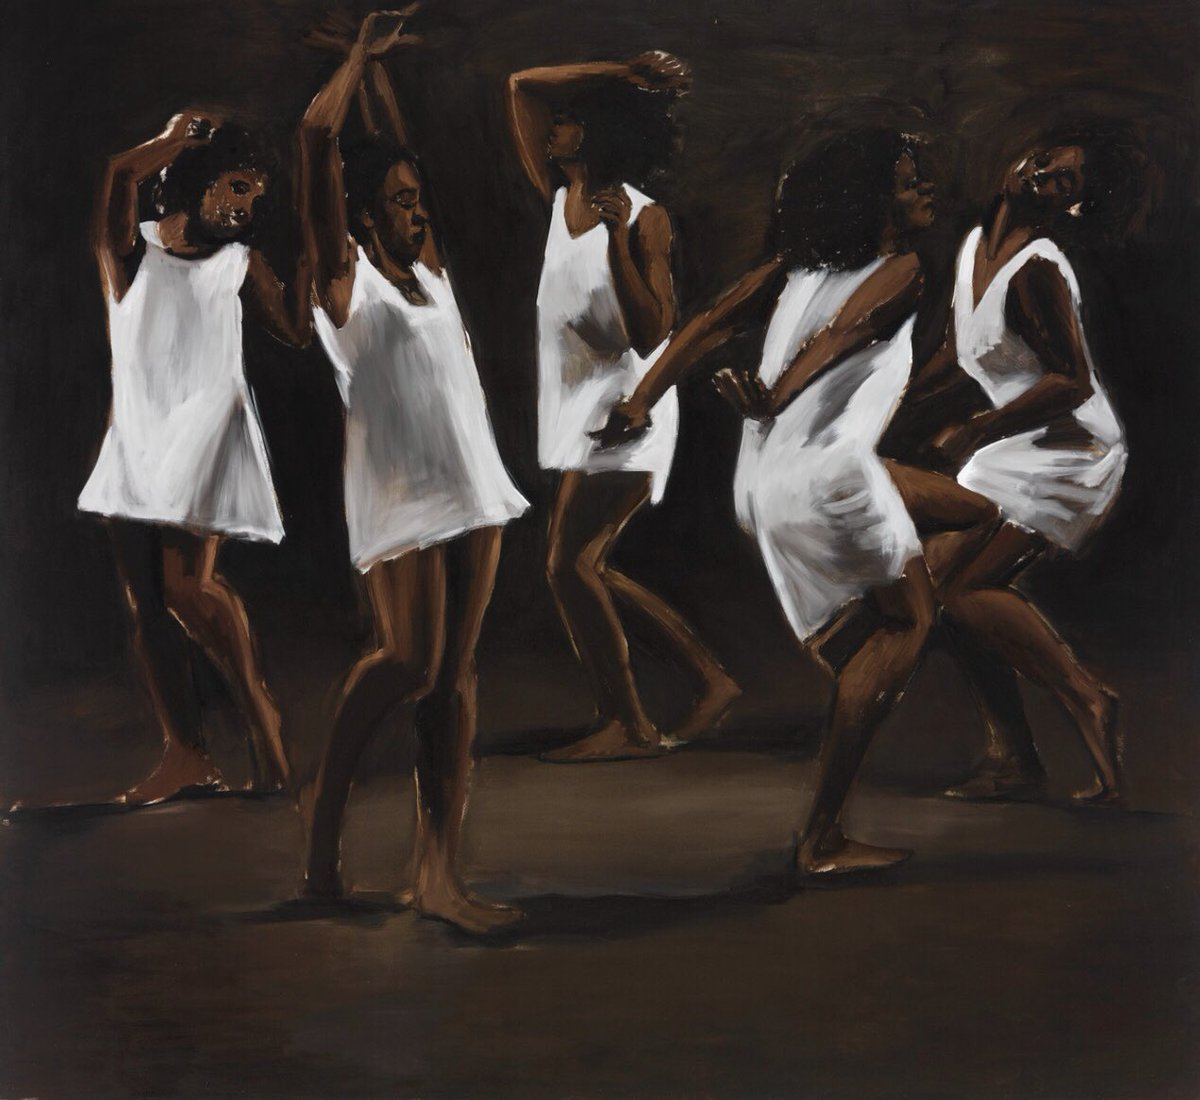 Painting by Lynette Yiadom-Boakye; a British Ghanaian painter and writer. Her work has contributed to the renaissance in painting the black figure.  We can wait to meet the Lynette in you on the 28th February. Grab your tickets here - http://www.changeforghana.org/event pic.twitter.com/TdGQmdKSOf